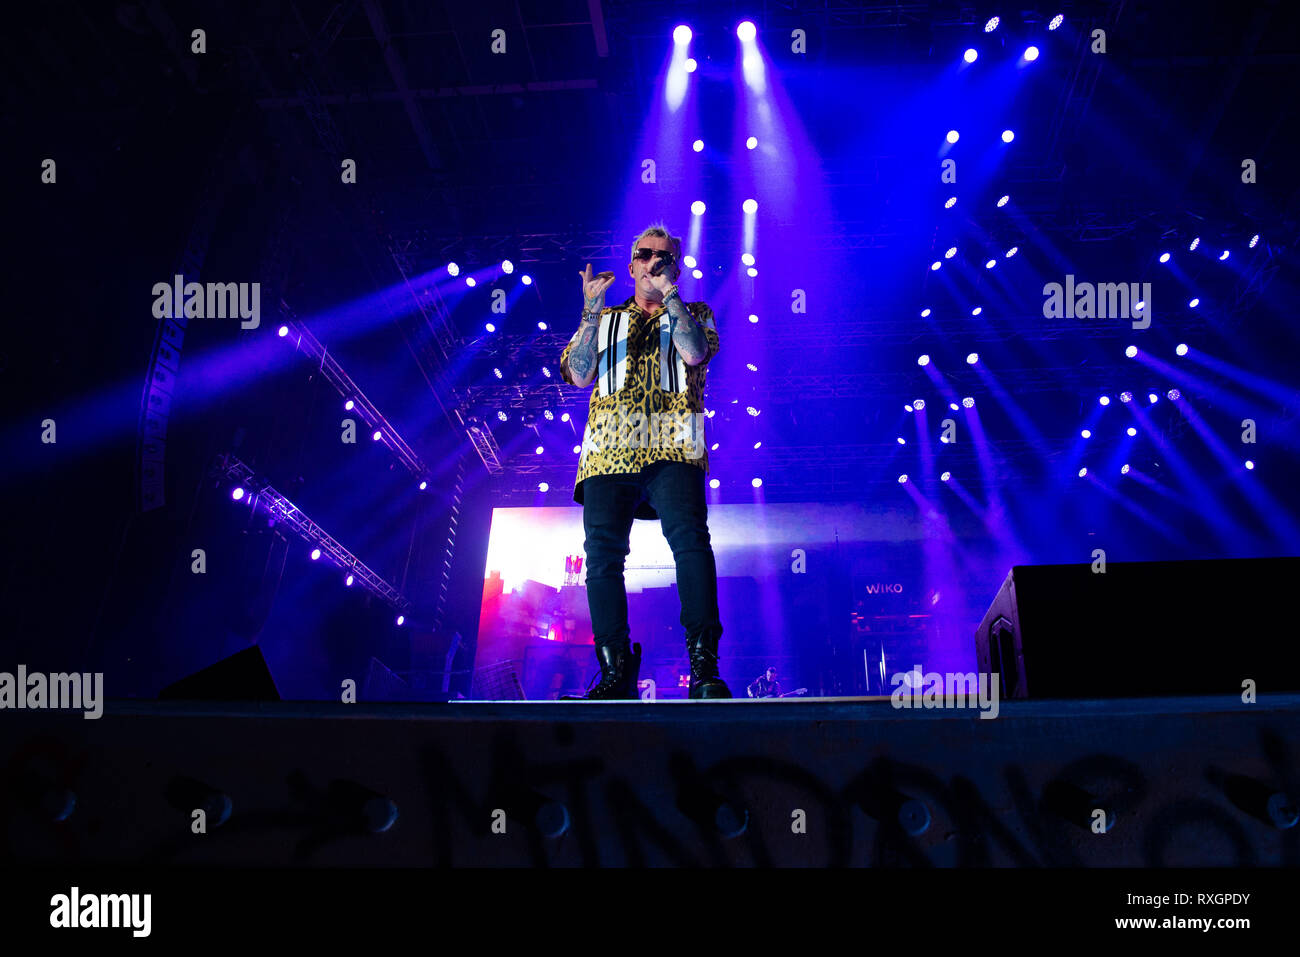 Turin, Italy. 9th Mar, 2019. The Italian rapper Salmo seen performing live at Pala Alpitour in Salmo Music Concert. Credit: Diego Puletto/SOPA Images/ZUMA Wire/Alamy Live News Stock Photo